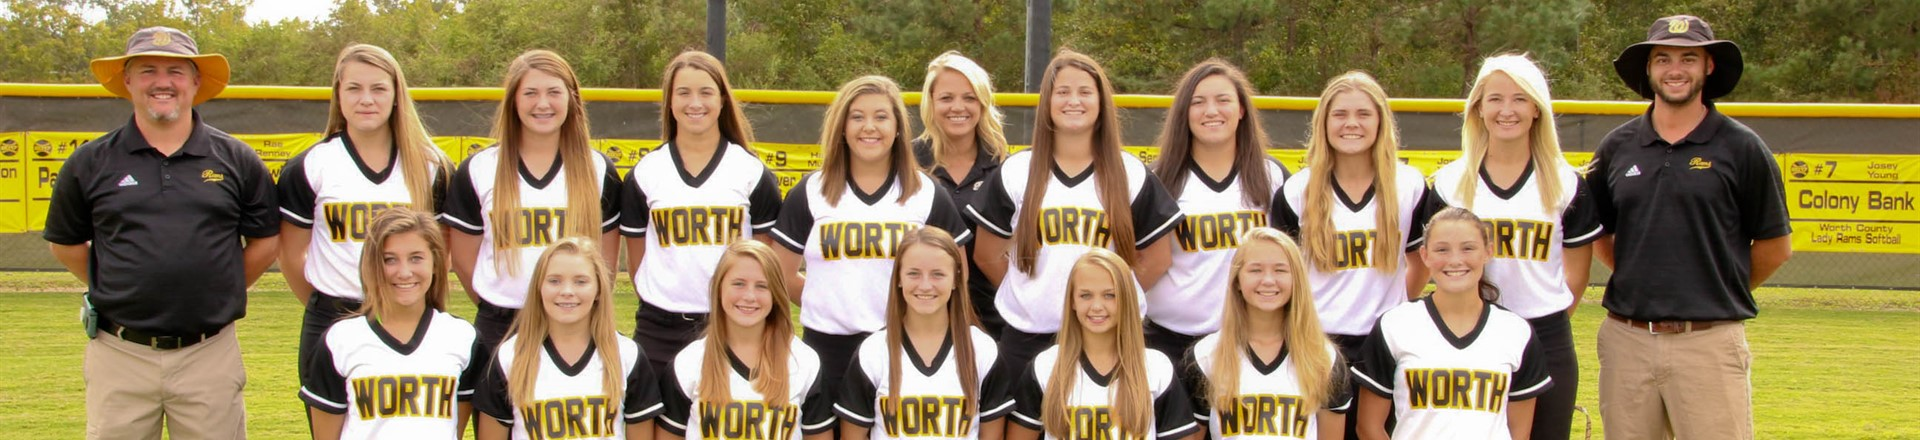 WCHS Lady Rams Softball